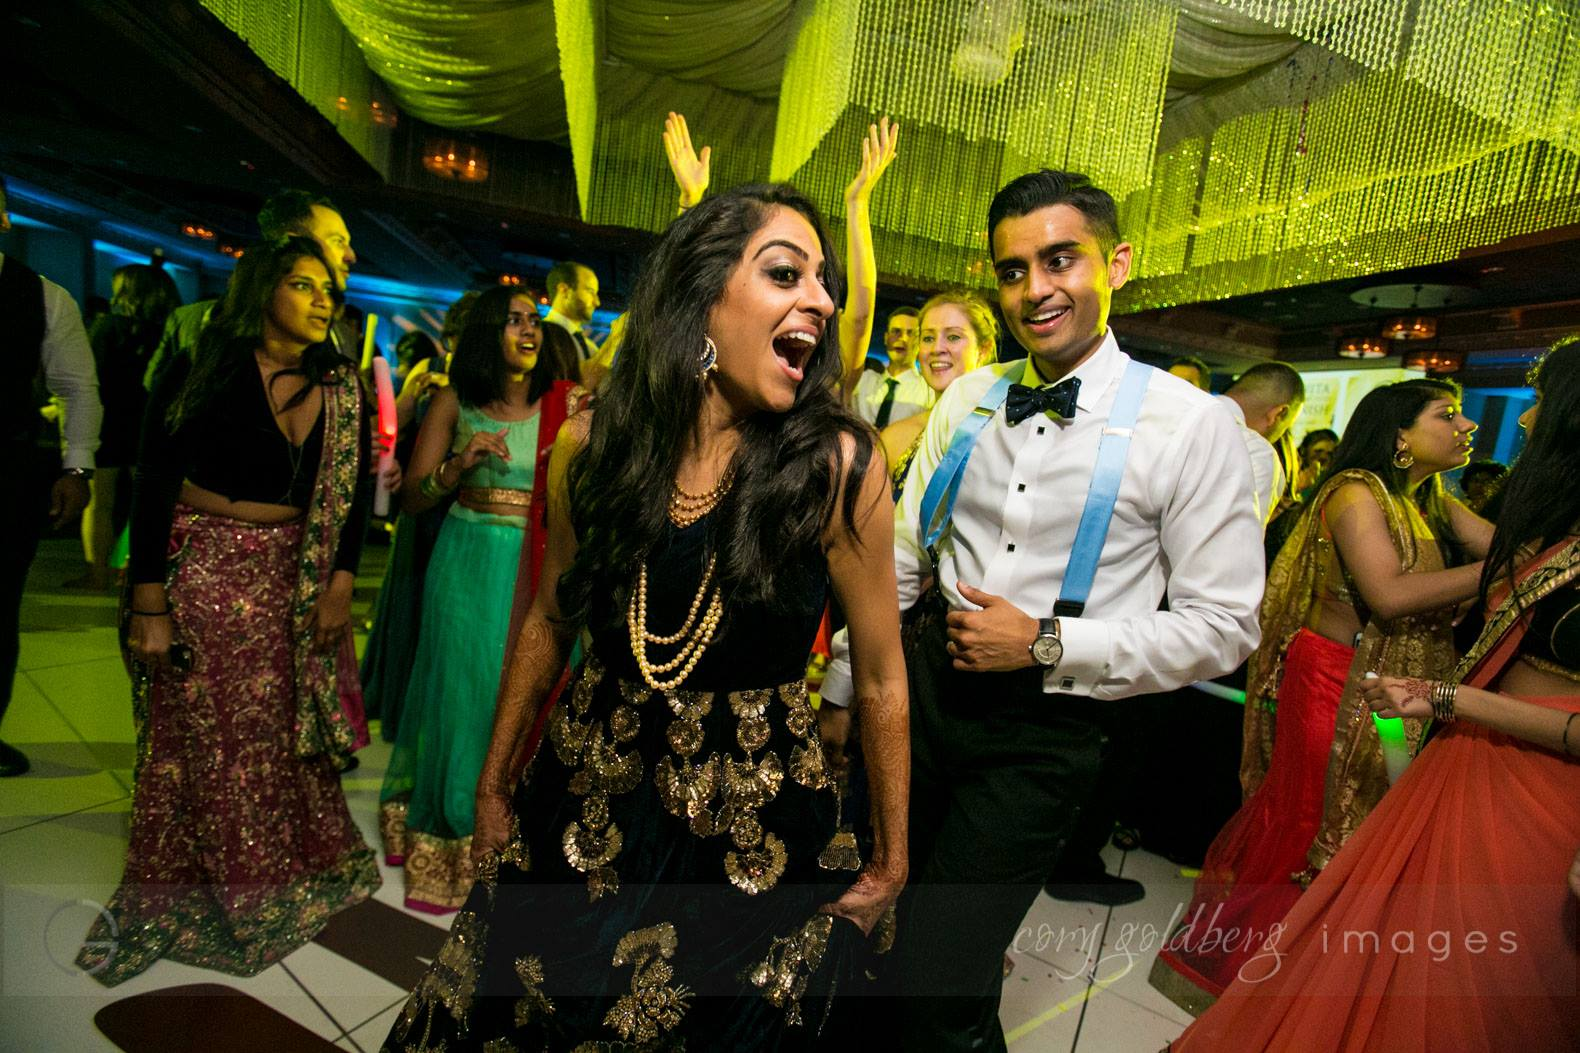 Manish & Kavitha Couple Dance Floor